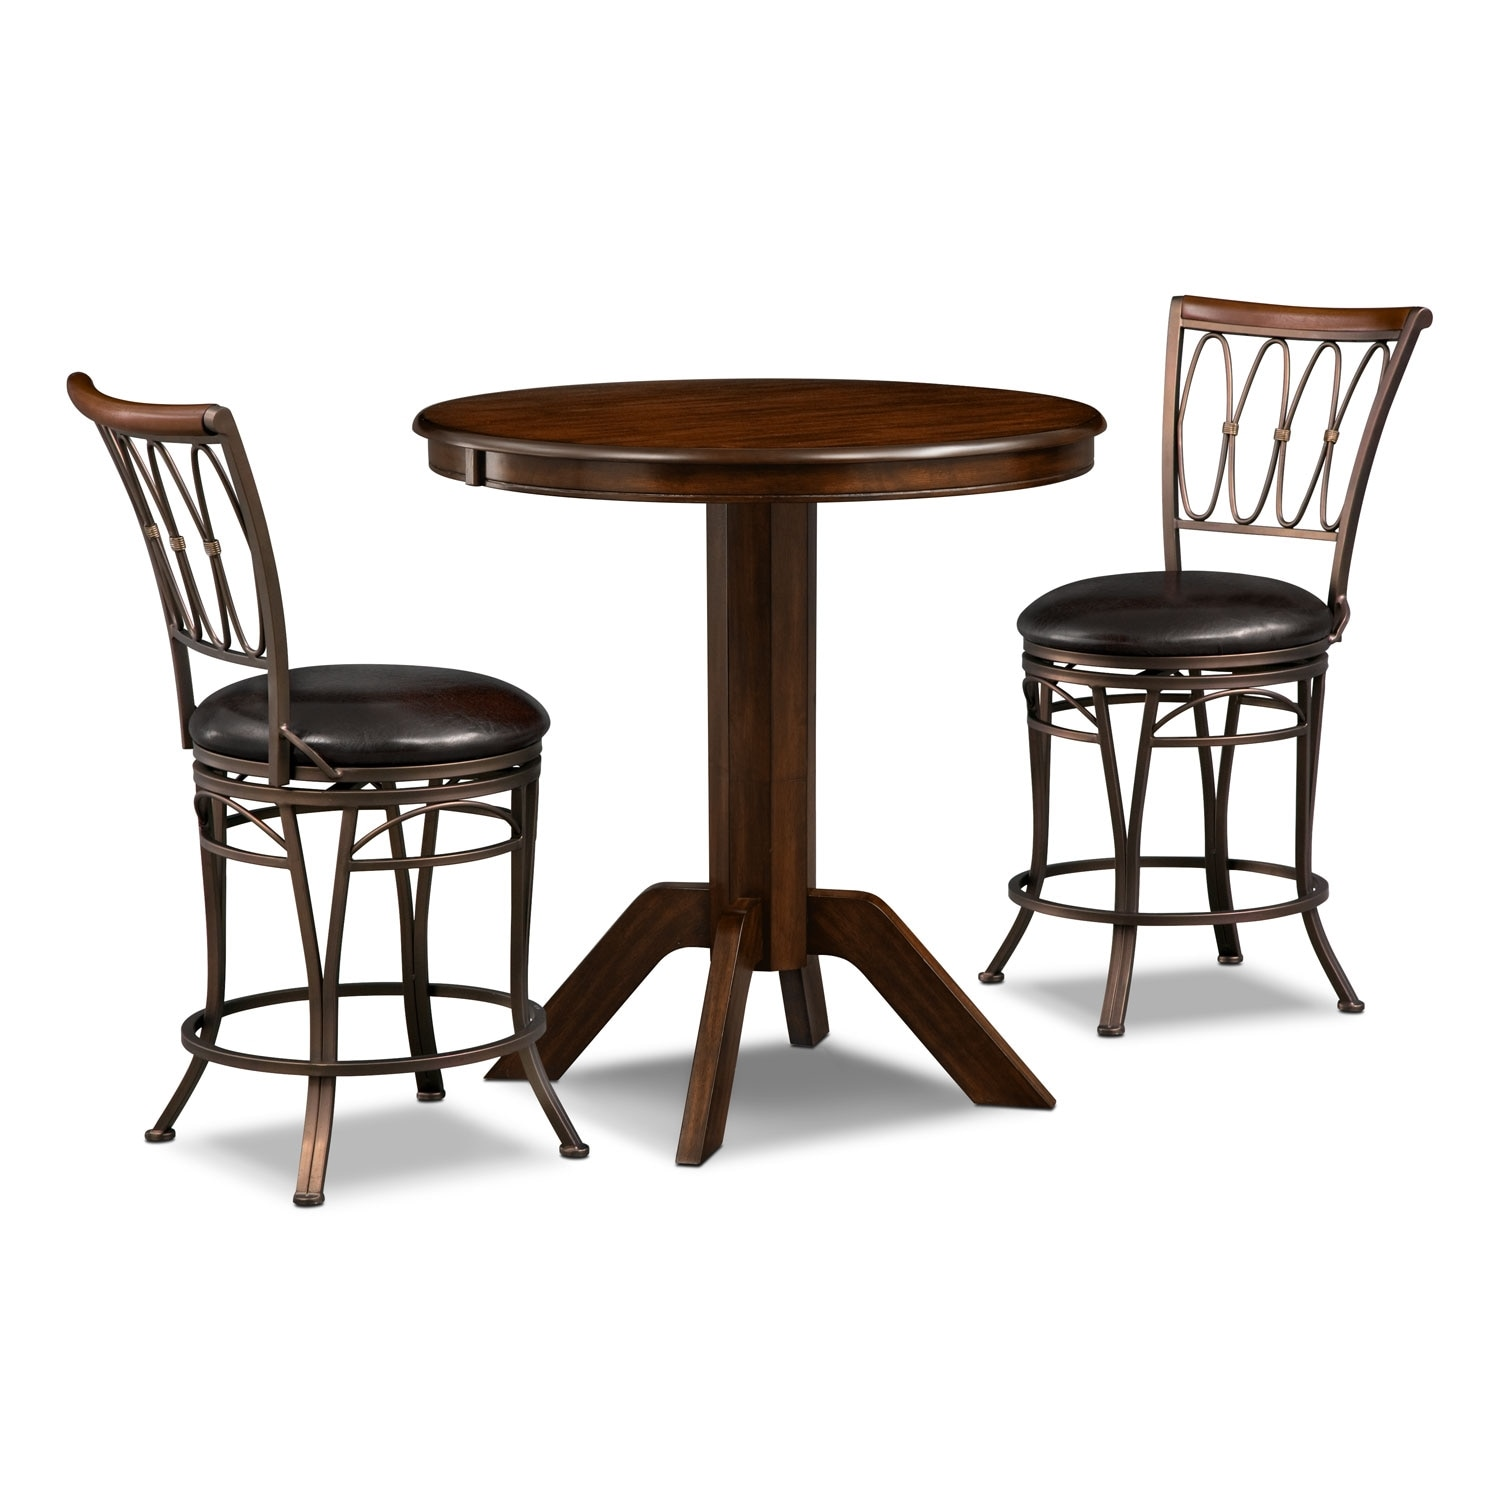 Dining Room Furniture - Concord Blake 3 Pc. Counter-Height Dinette